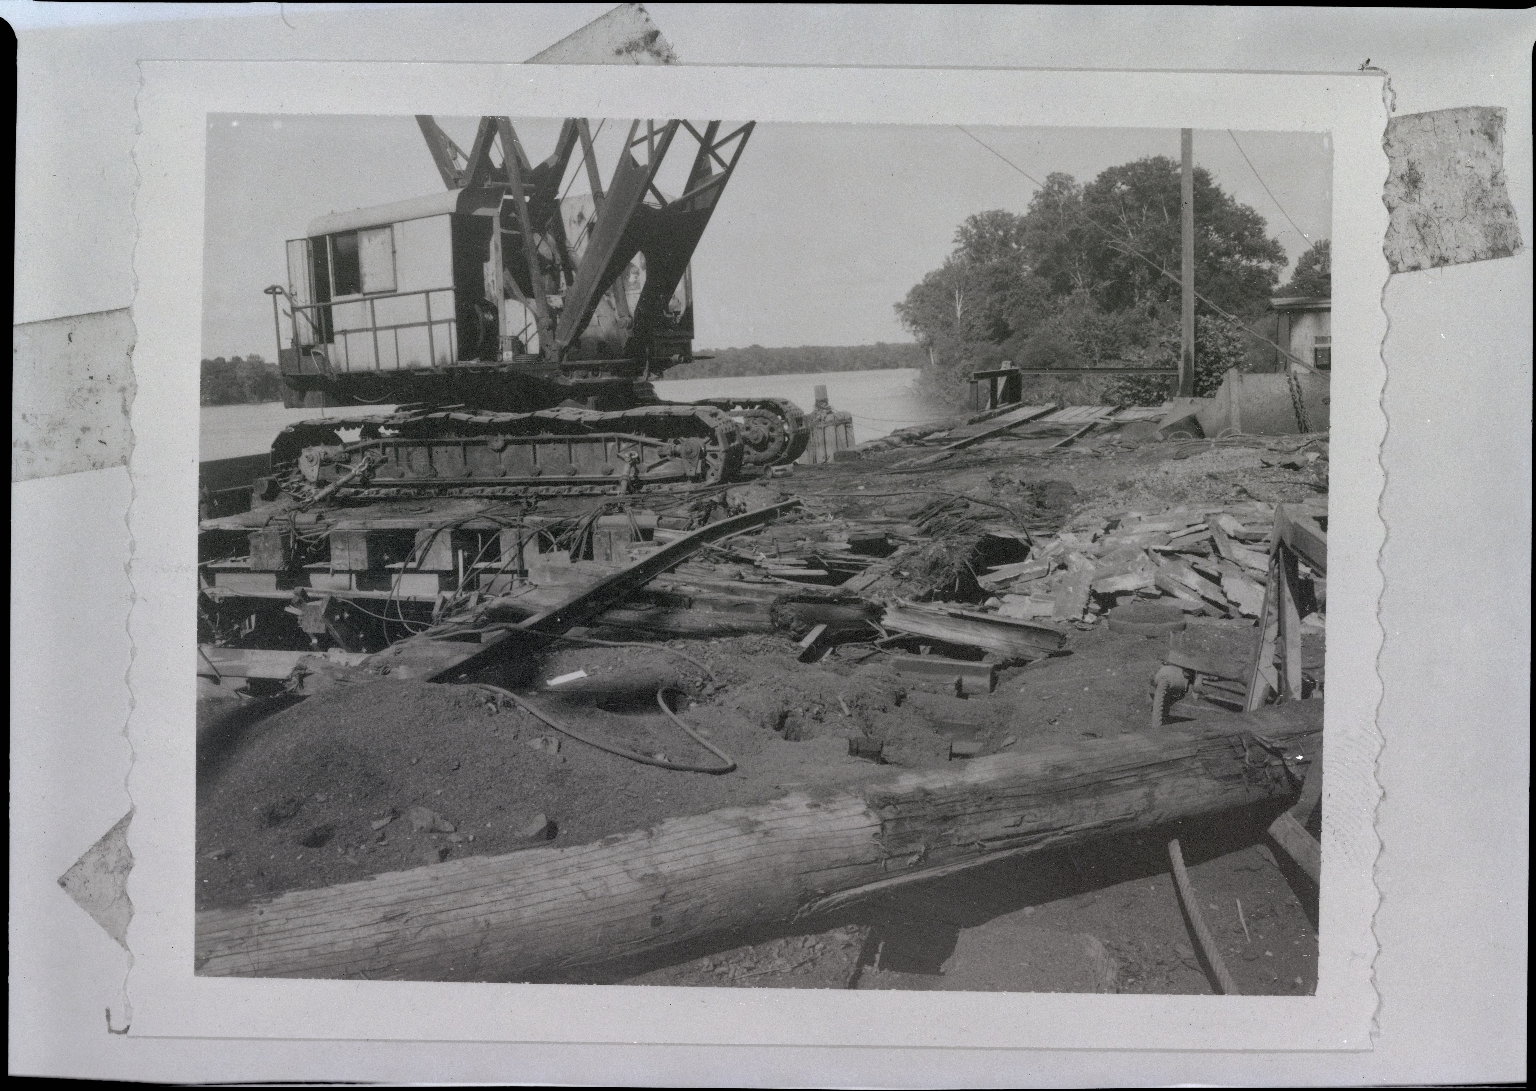 Construction on River